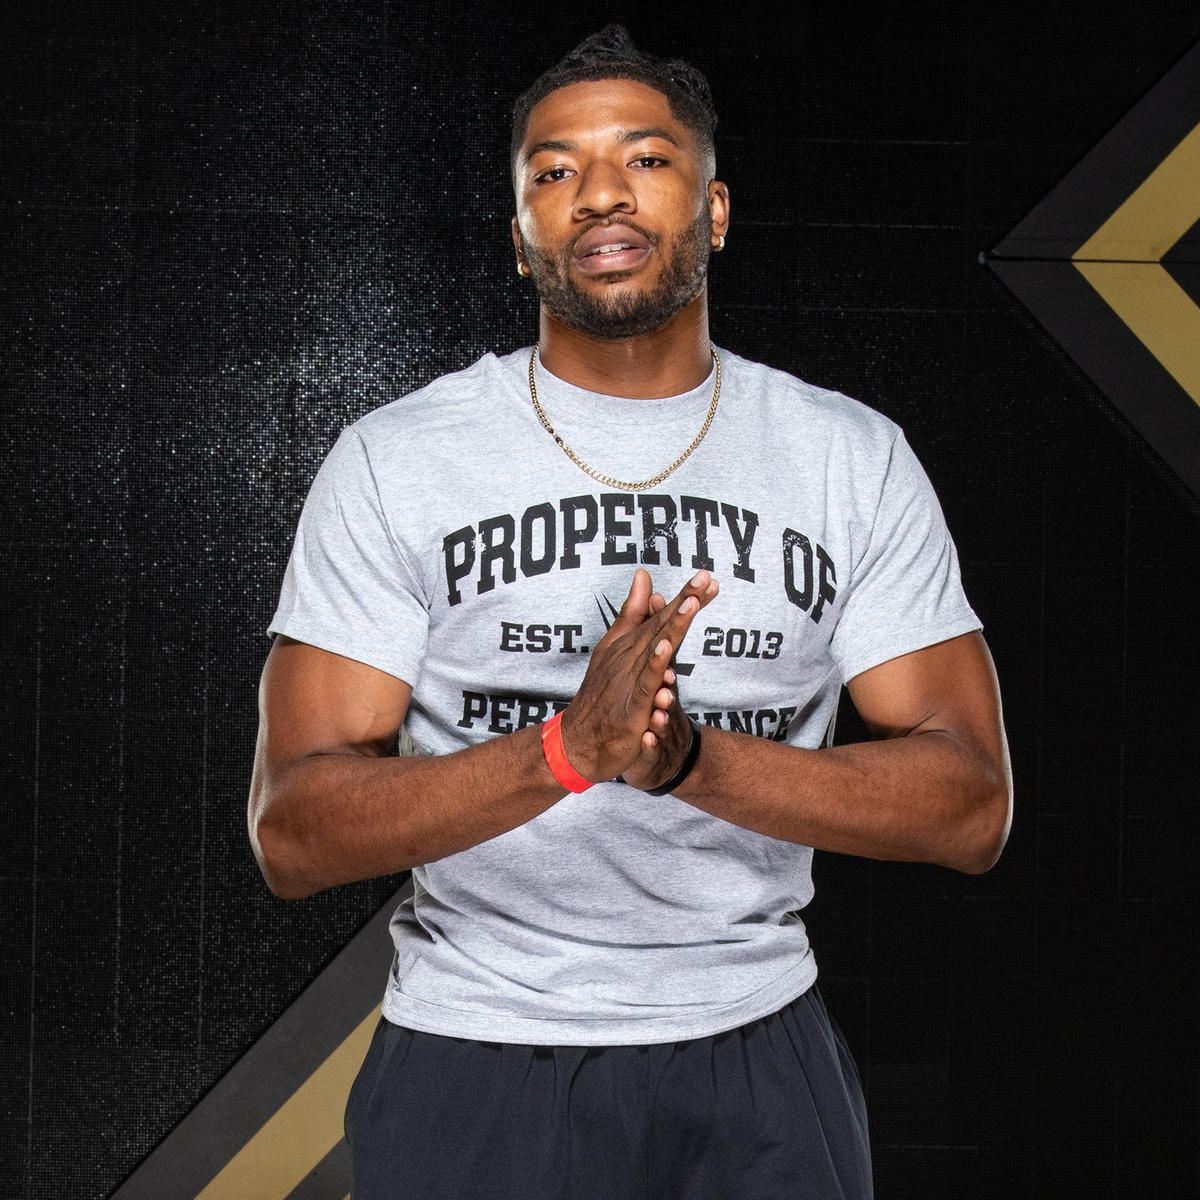 Matrick Belton played Division I football for the University of South Carolina and has attended training camps for the NFL's Philadelphia Eagles.